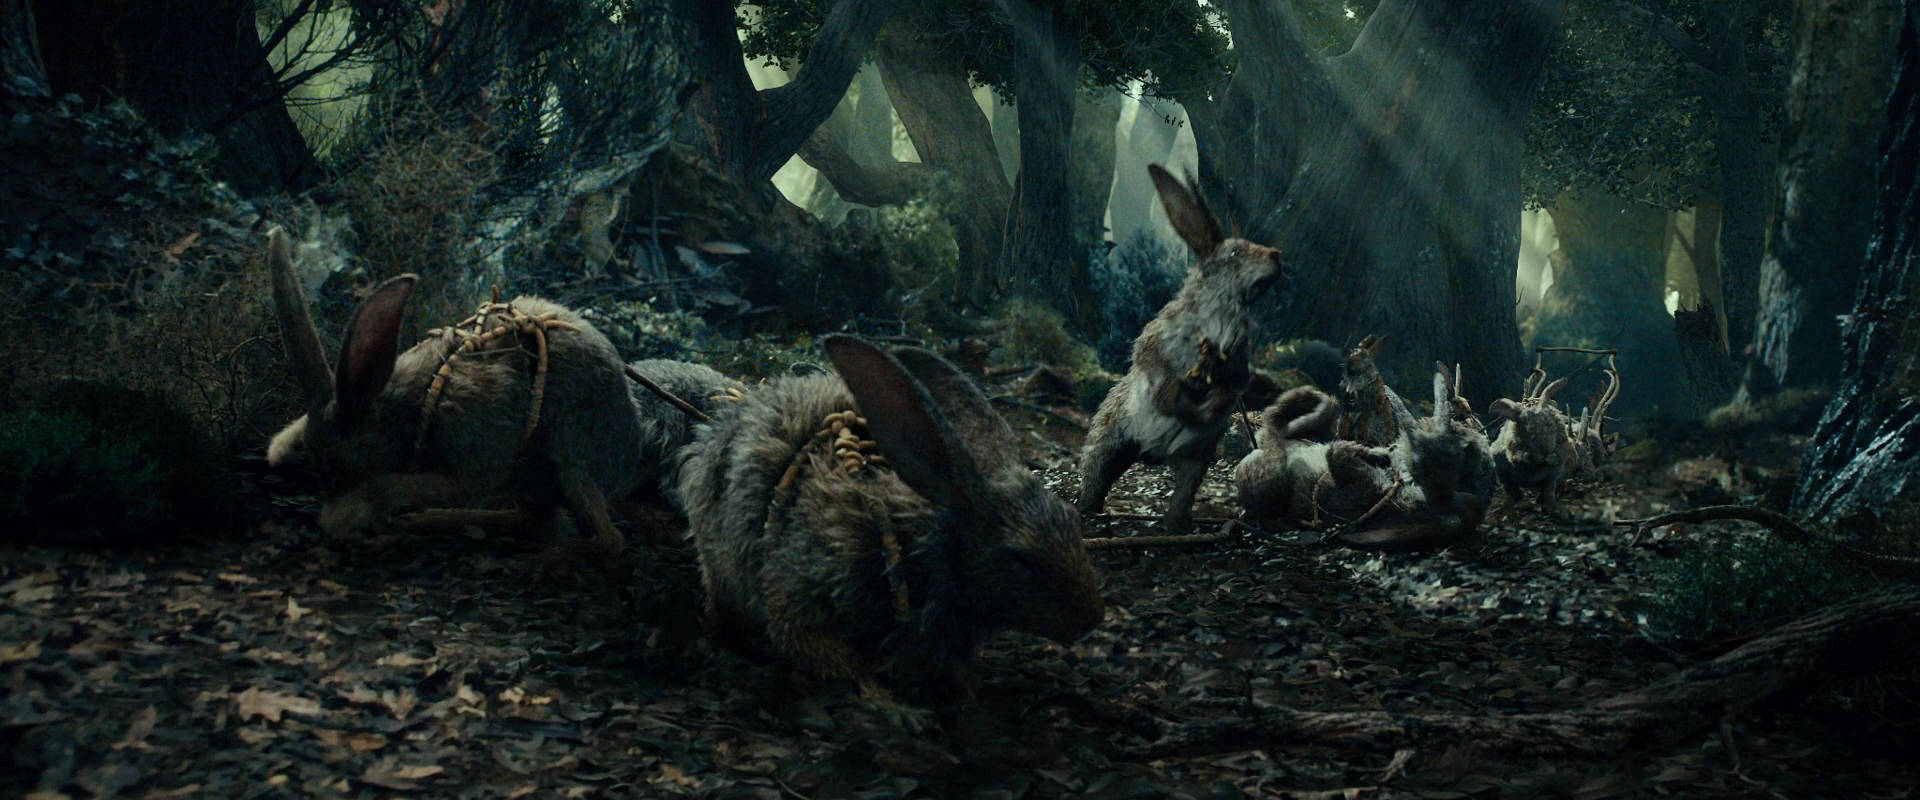 Image result for radagast hobbit rabbits